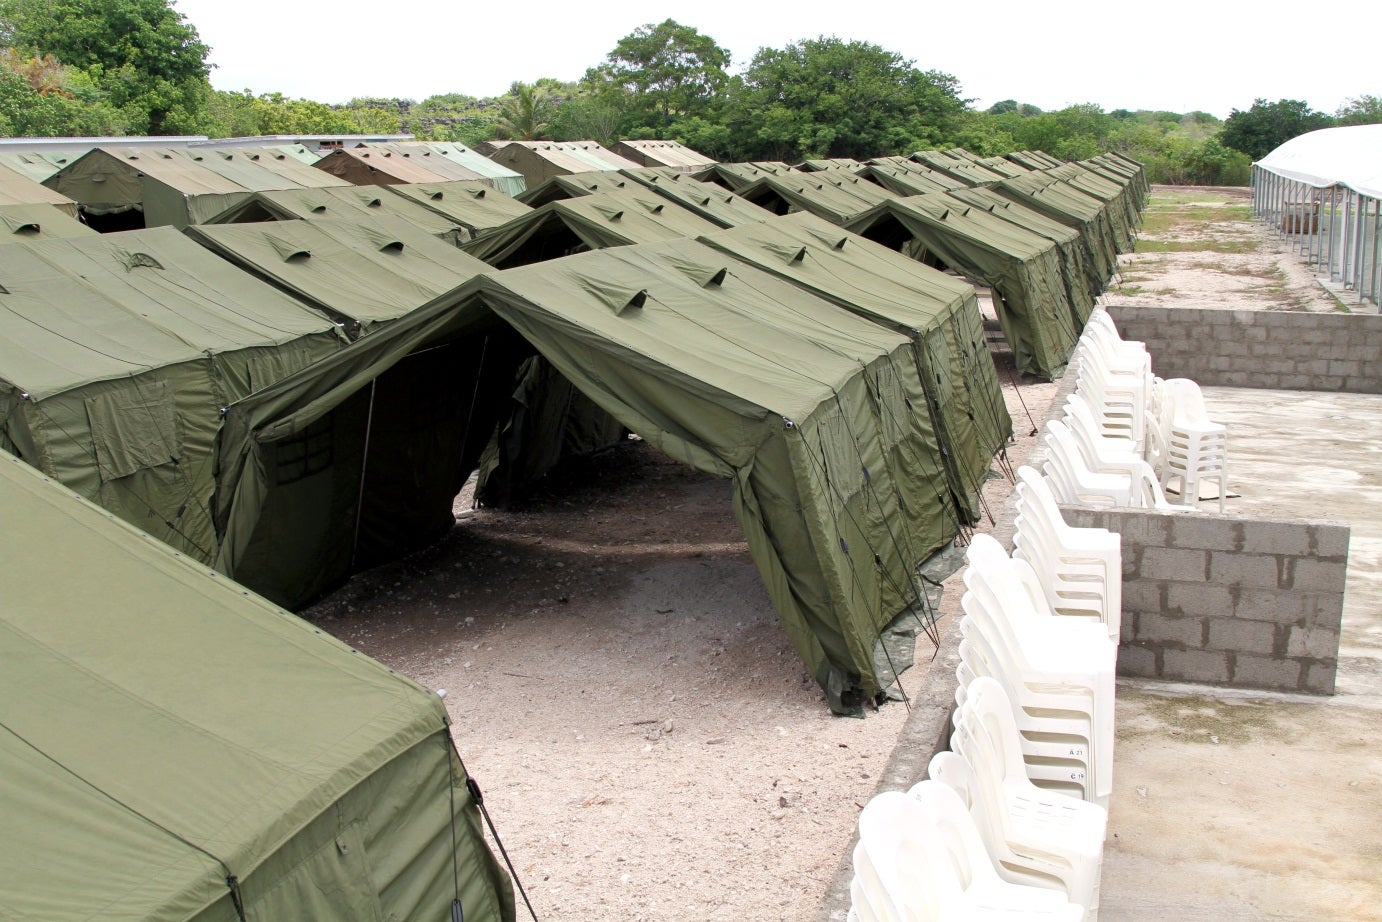 Top view showing rows of tents & 12 Children in detention on Nauru | Australian Human Rights Commission